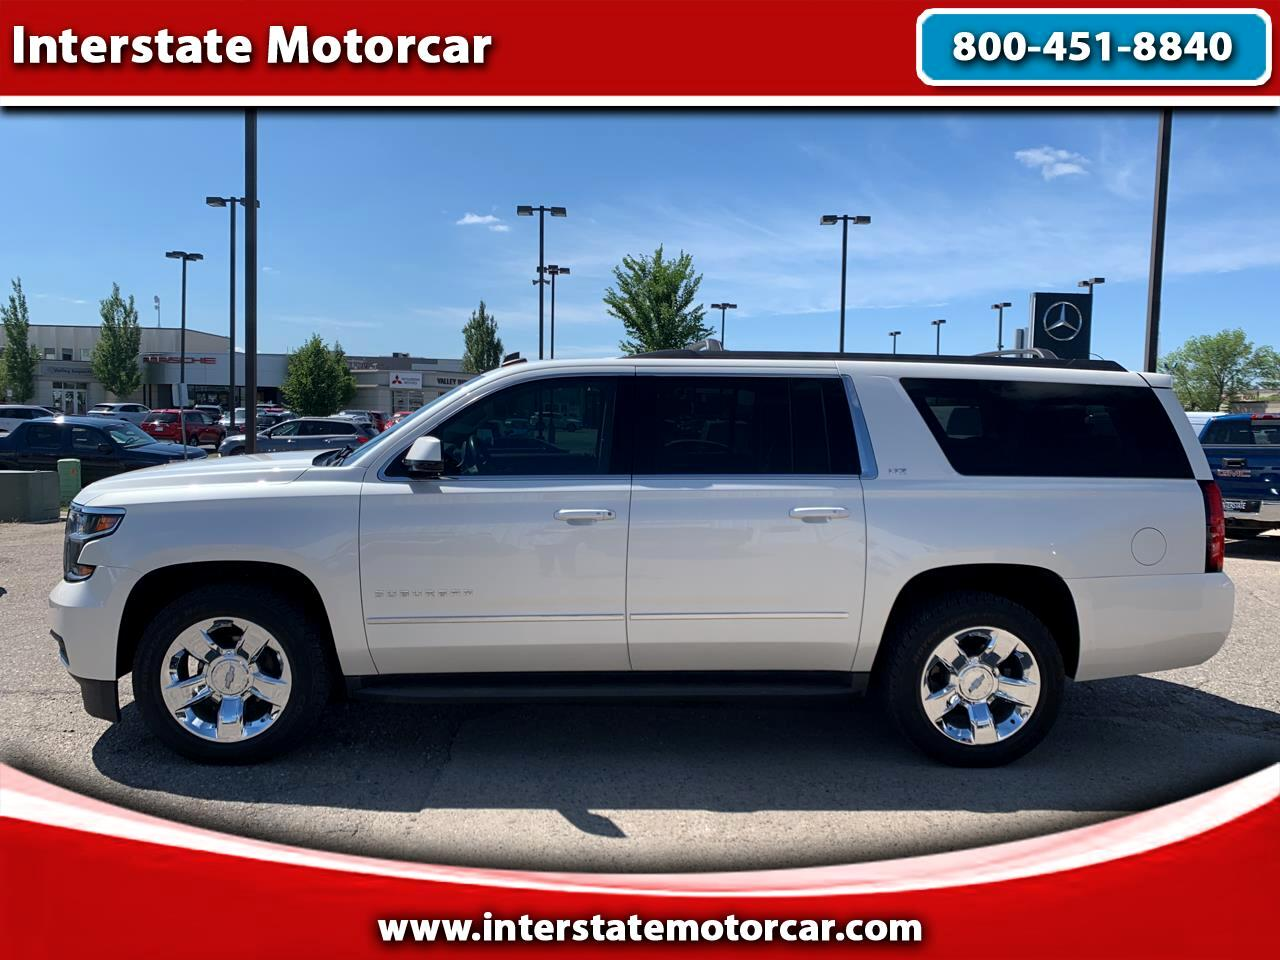 Used 2015 Chevrolet Suburban 4wd 4dr Lt For Sale In Fargo Nd 58103